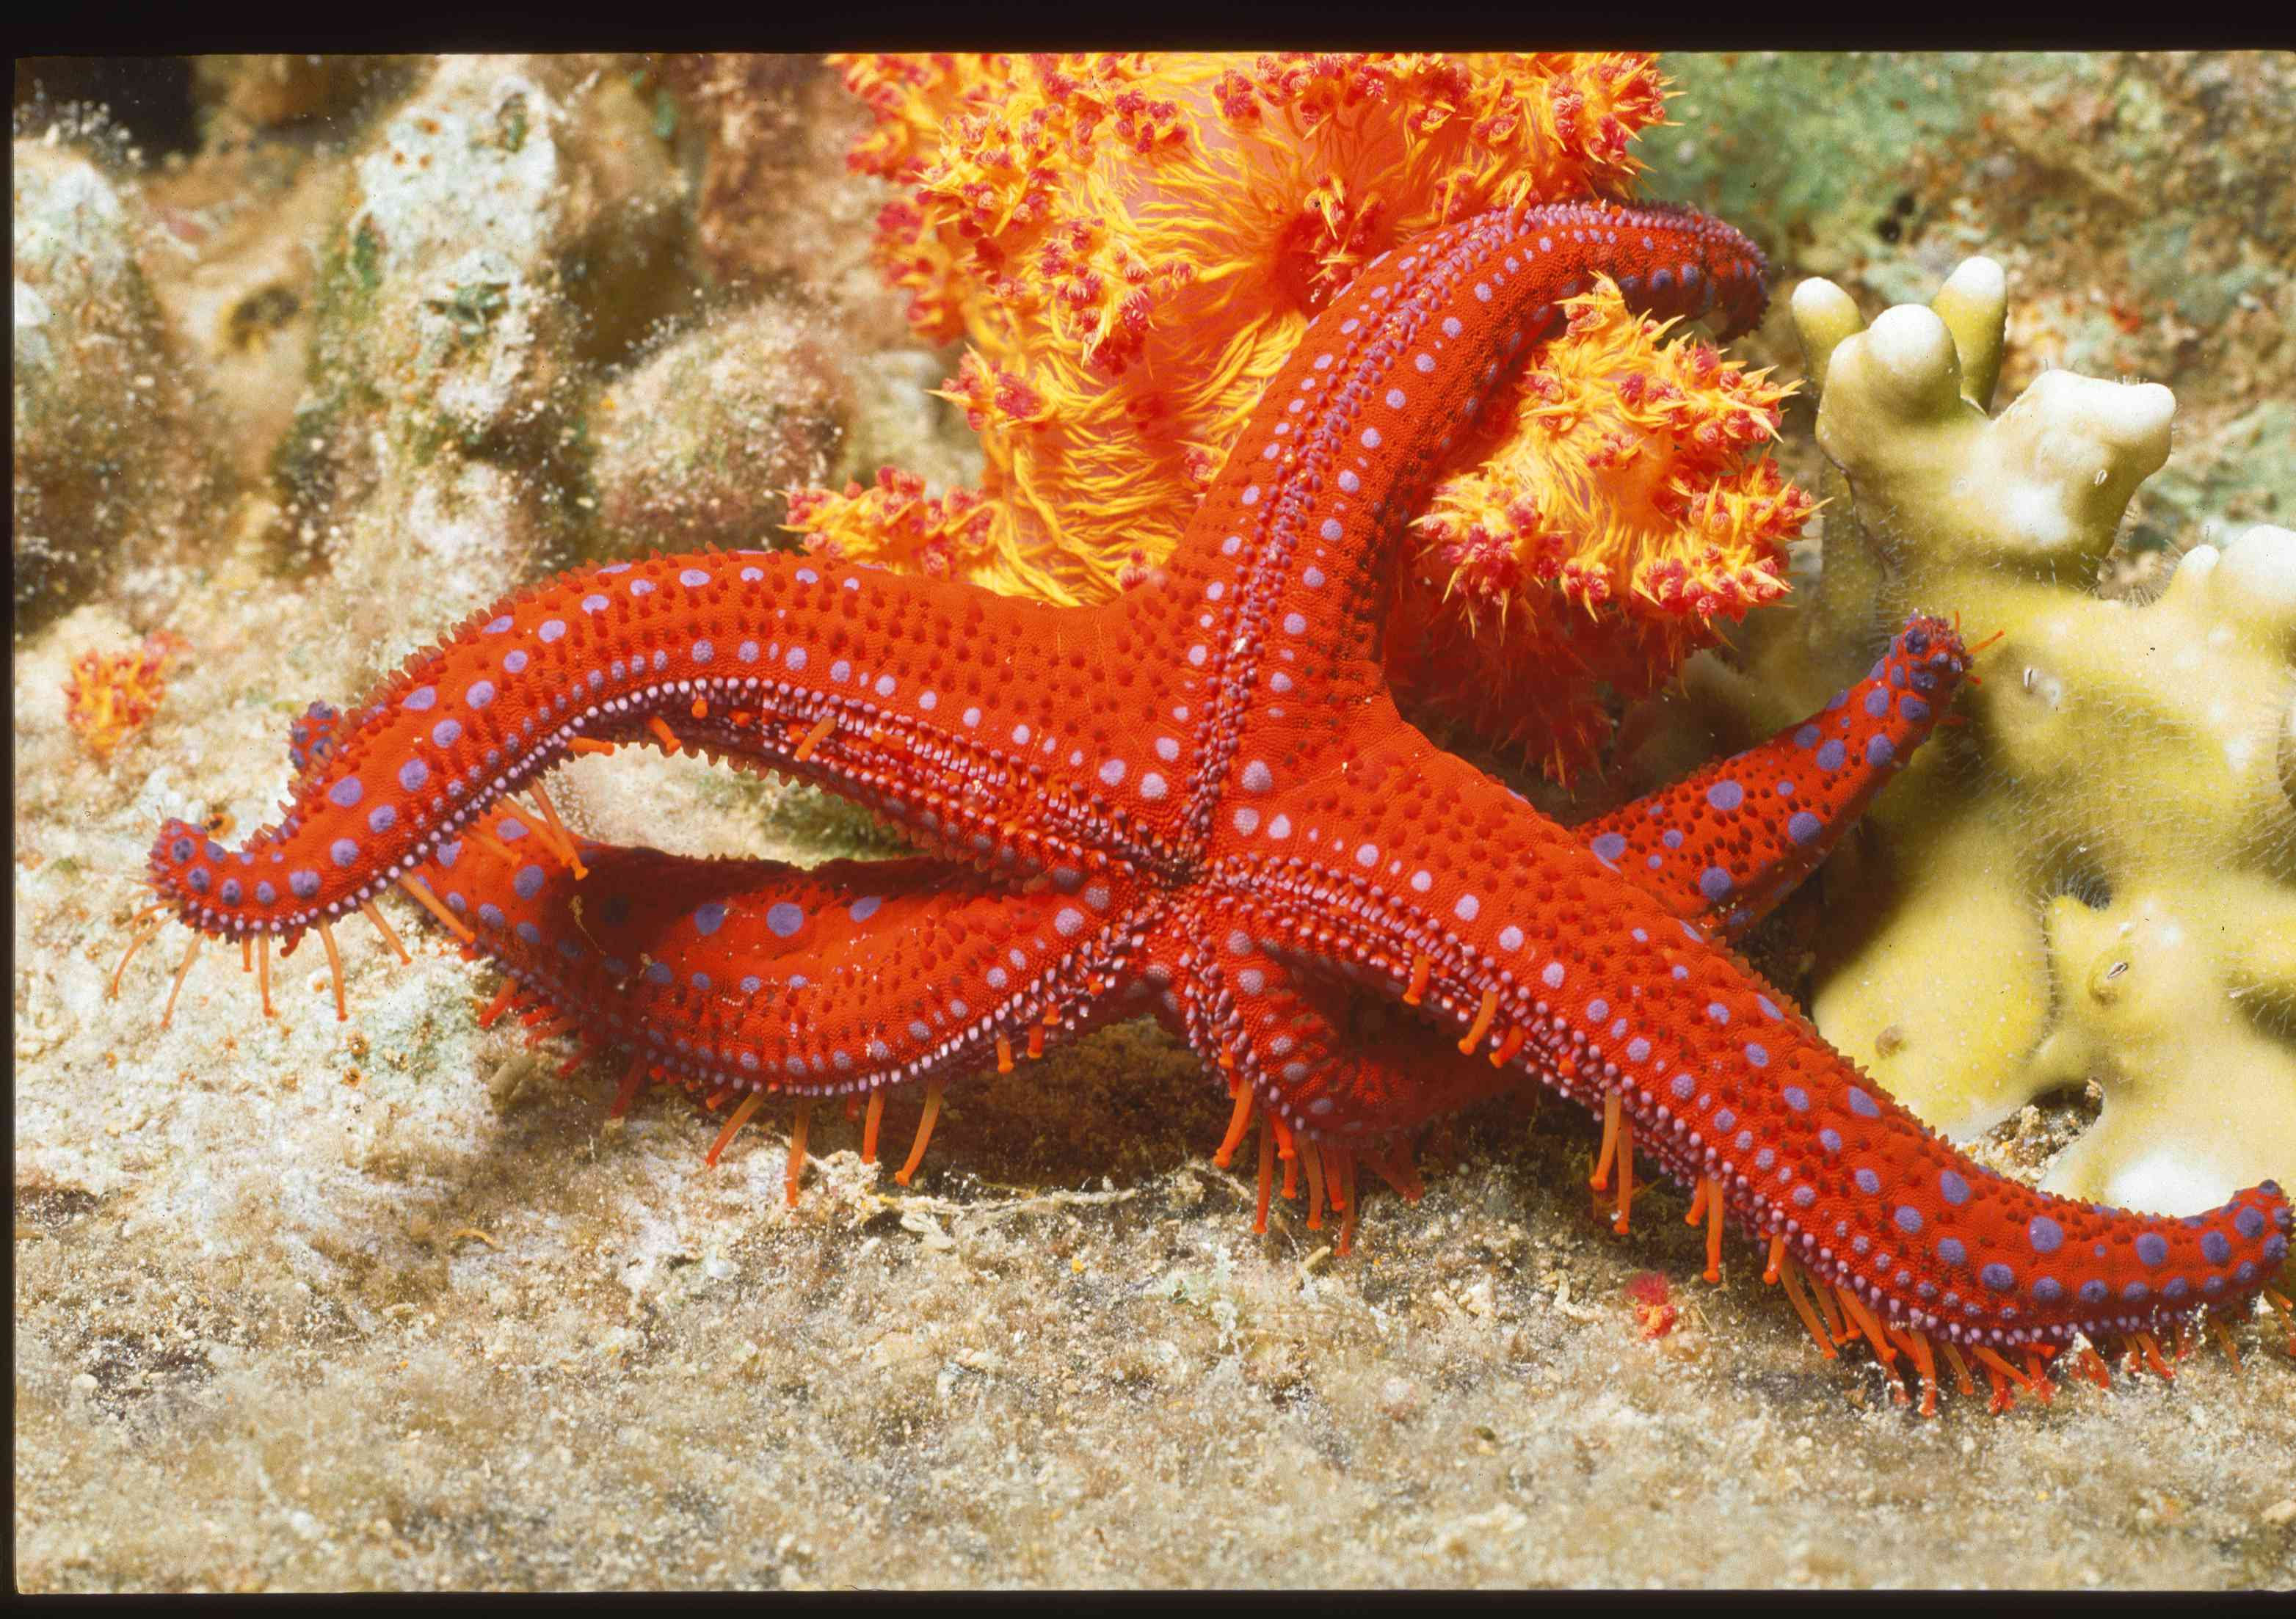 A red sea star attached to a reef underwater.